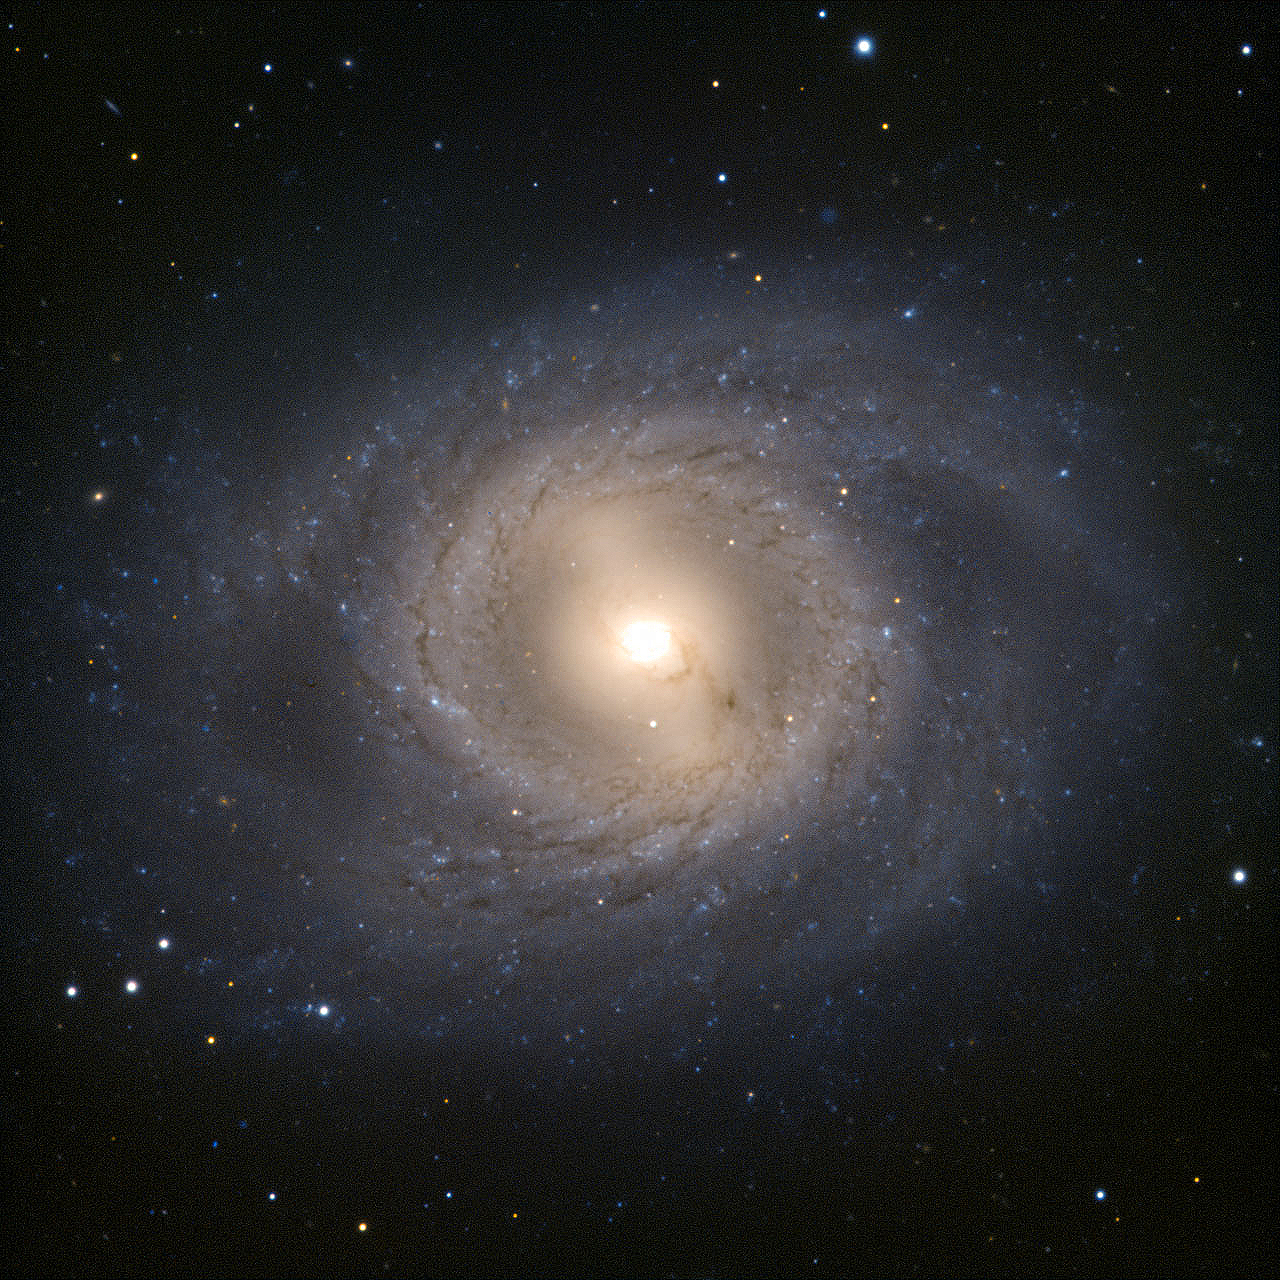 JeanBaptiste Faure Barred Spiral Galaxy M95 as seen by